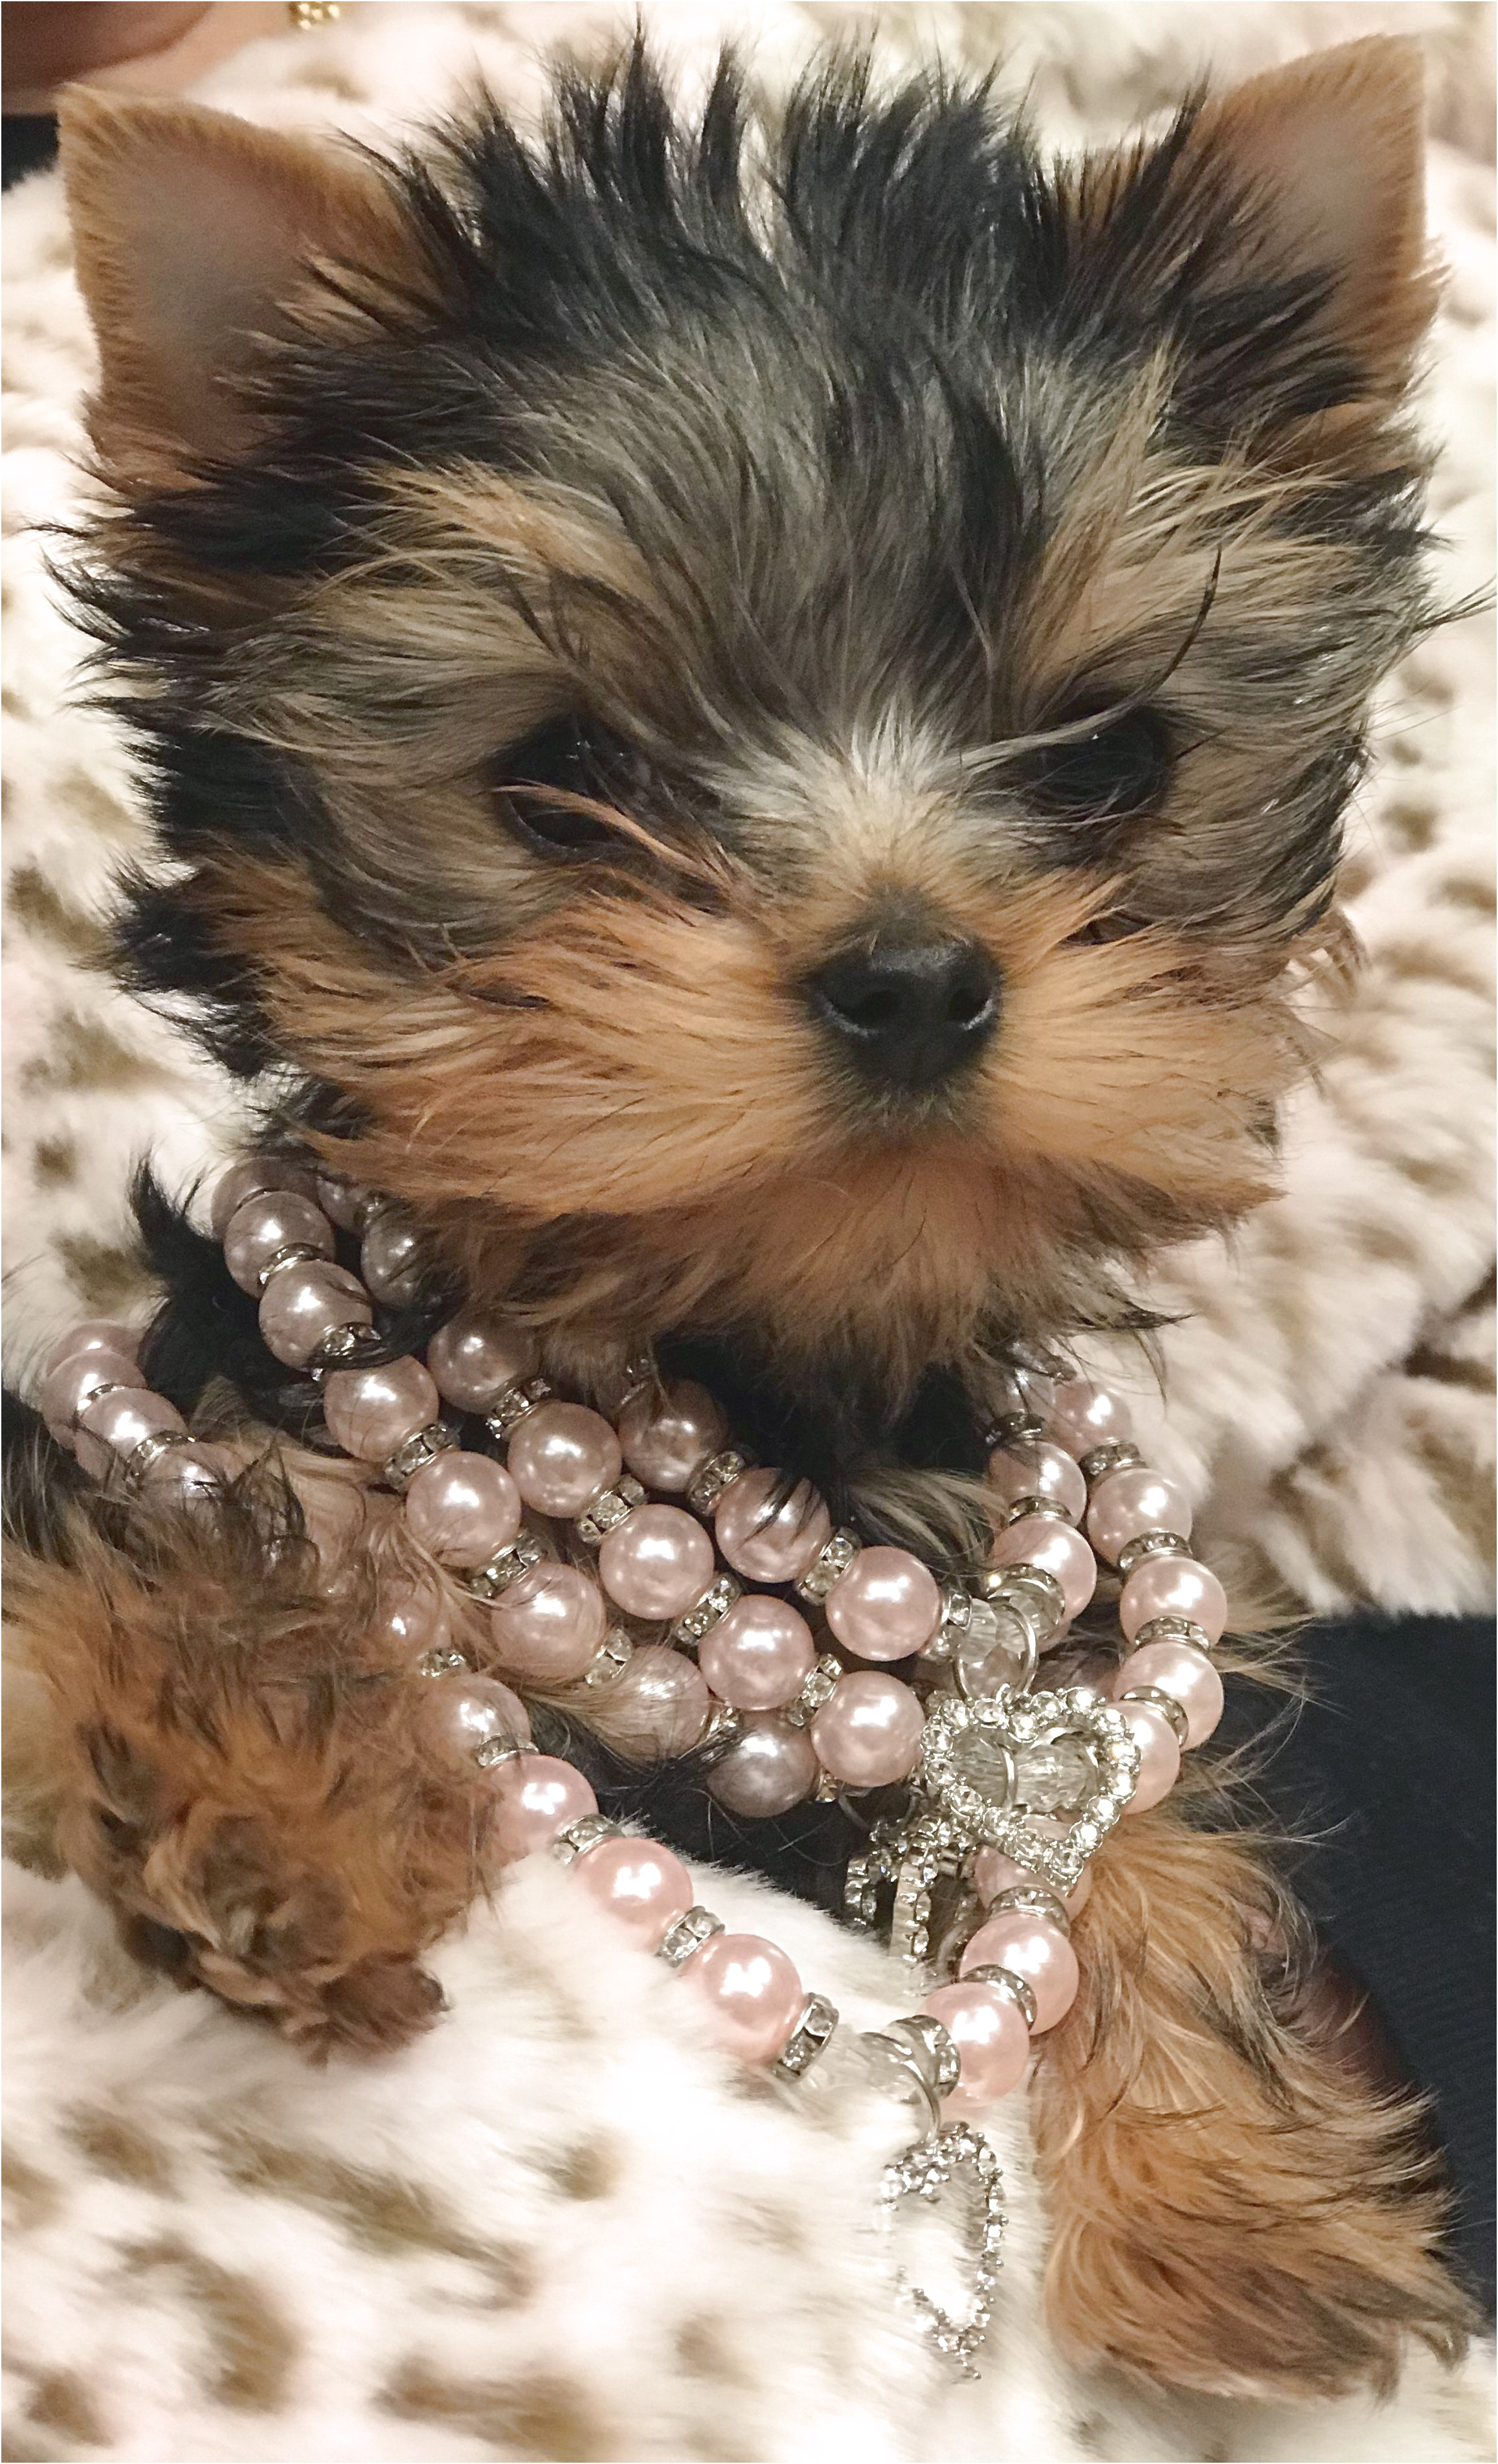 yorkshire terrier puppy personality